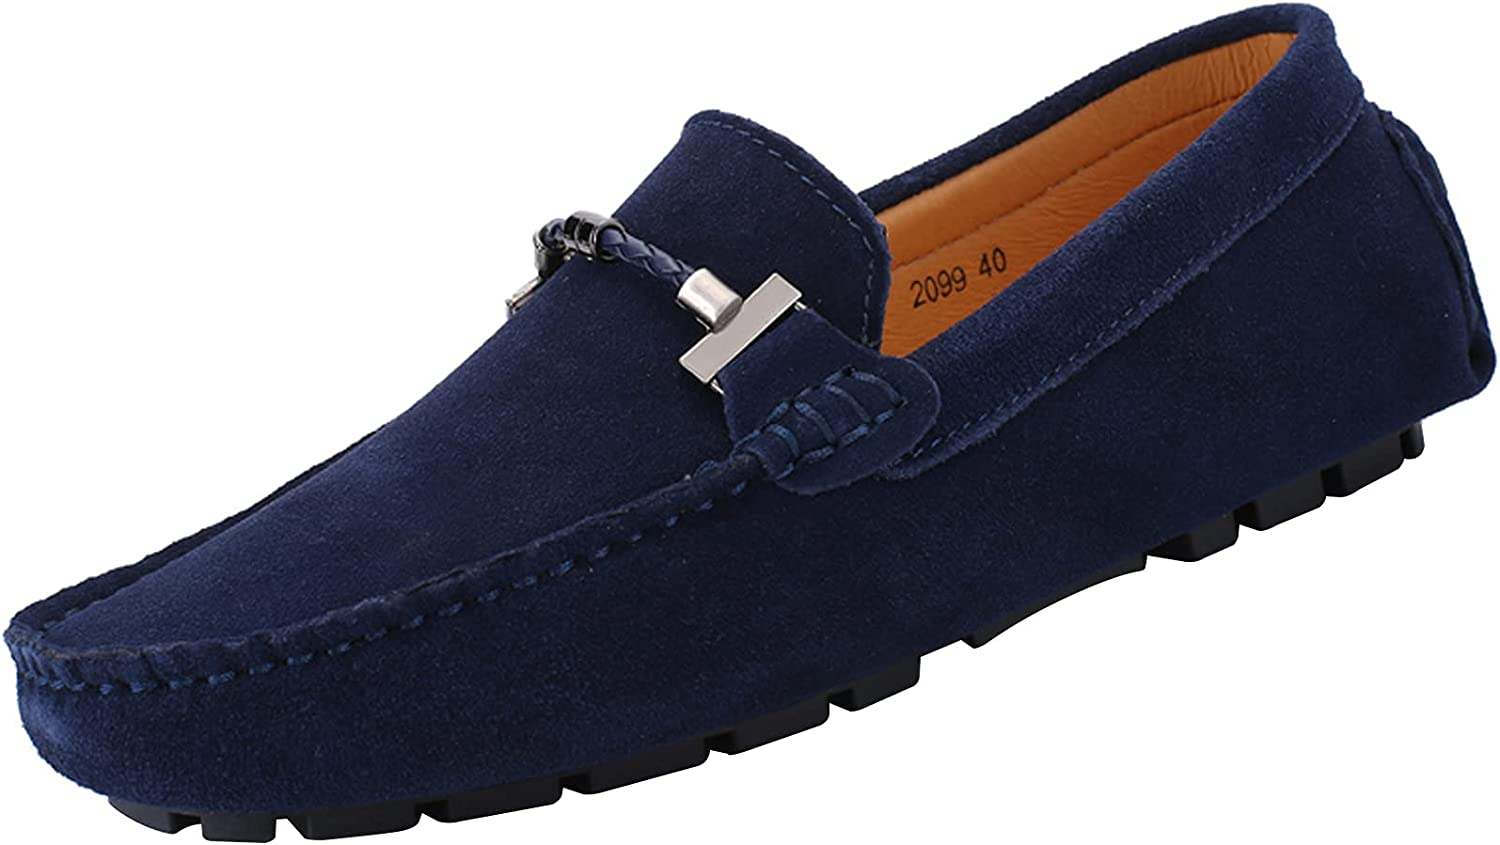 Limited price yldsgs Flat Loafer for Men Suede 67% OFF of fixed price M Leather Driving Dress Slip-on